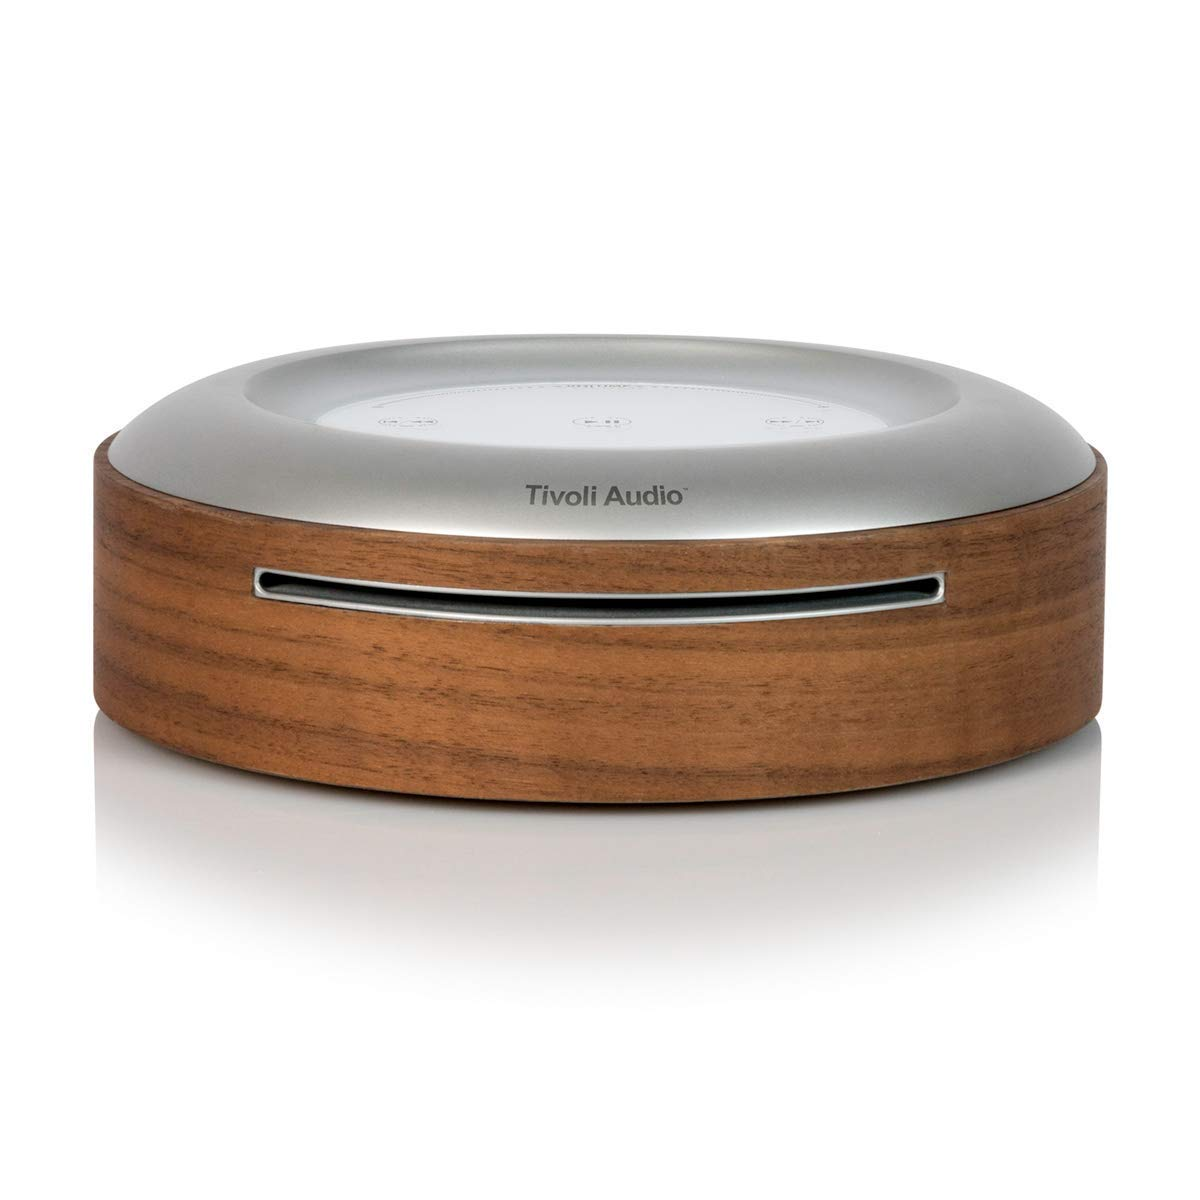 Tivoli Audio Wireless Home Model CD Player Walnut (ARTCD-1785-NA) by Tivoli Audio